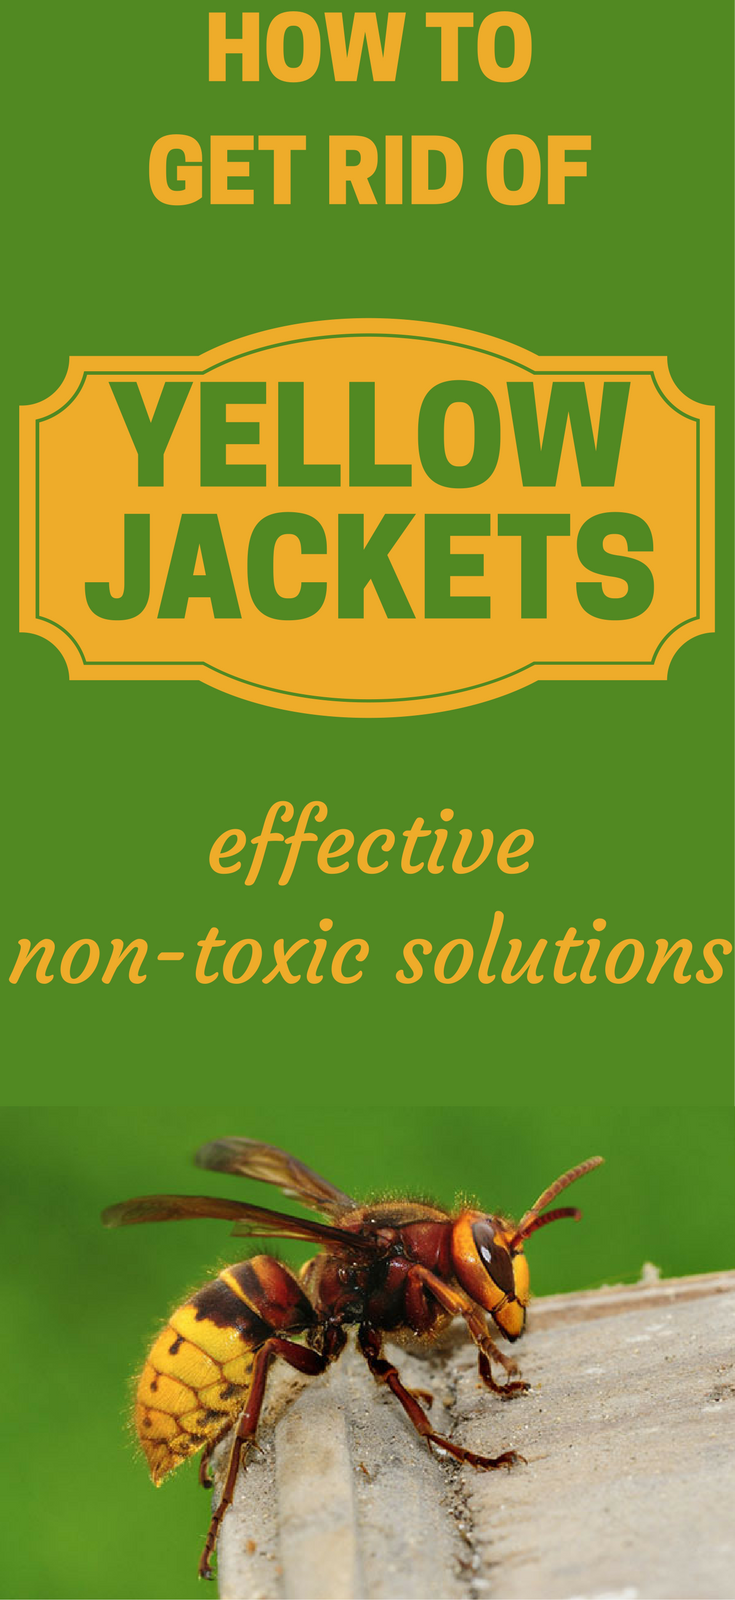 How To Get Rid Of Yellow Jackets Effective Non Toxic Solutions Yellow Jacket How To Get Rid Solutions